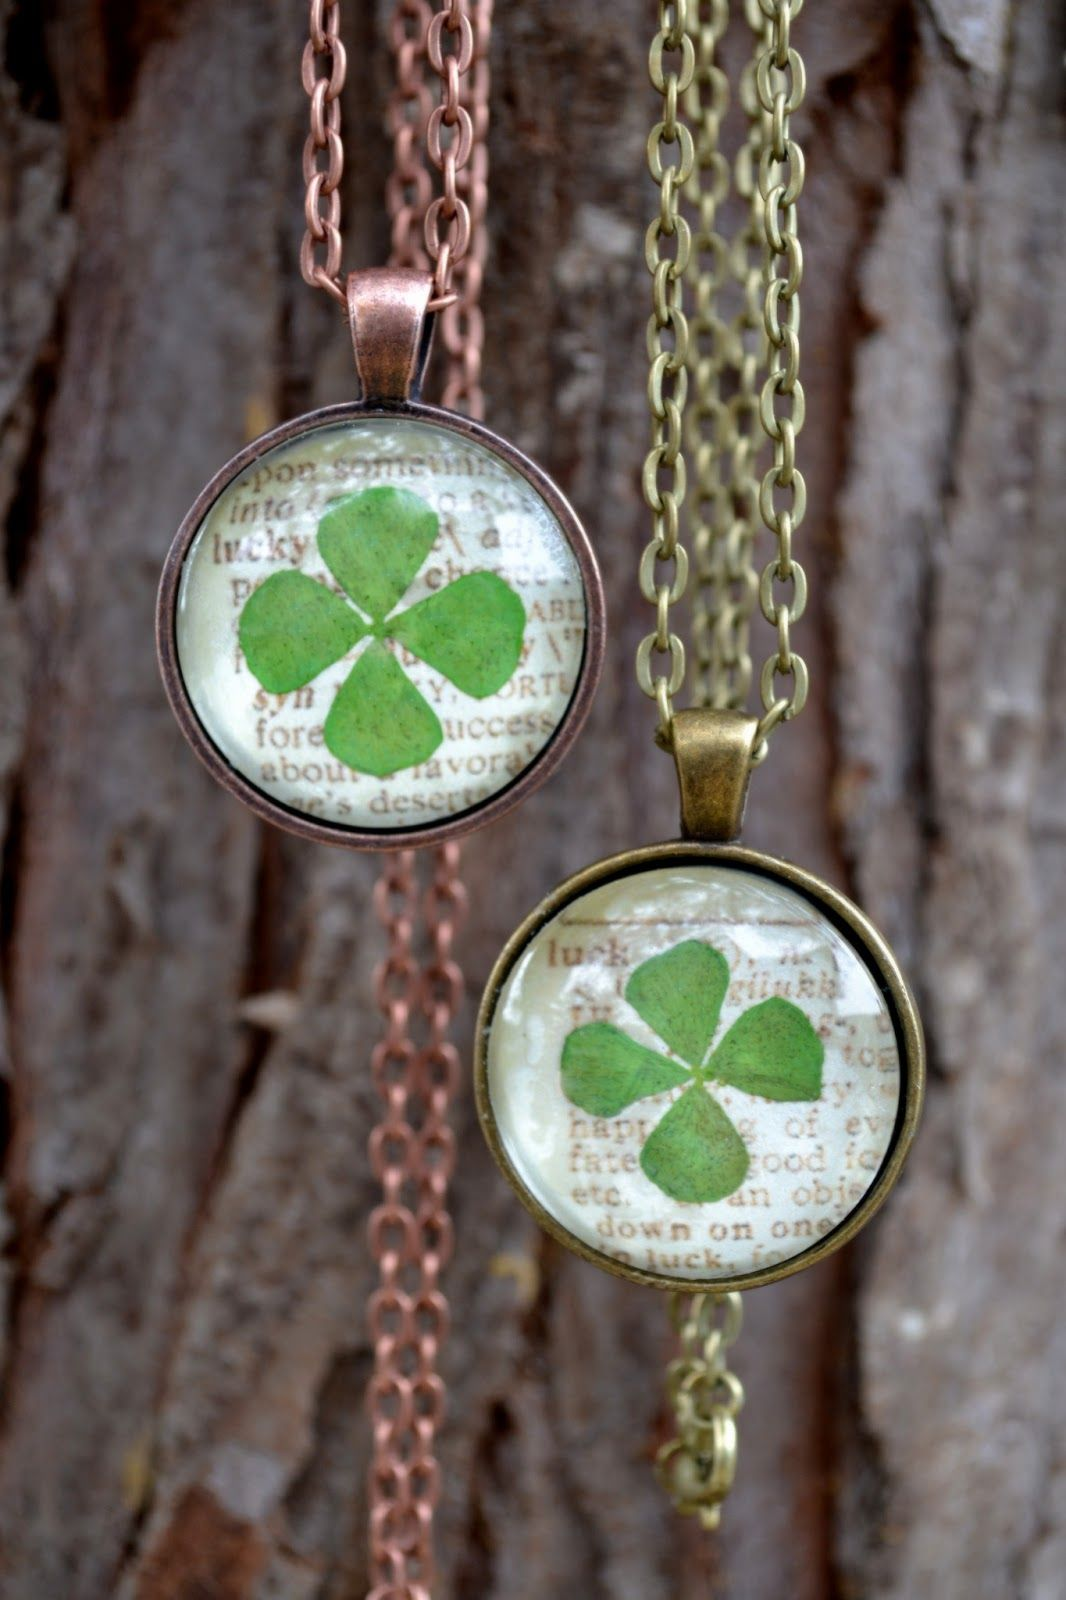 Rook no 17 recipes crafts whimsies for spreading joy st rook no recipes crafts whimsies for spreading joy st patricks day craft lucky clover pendant necklace this is cute aloadofball Gallery